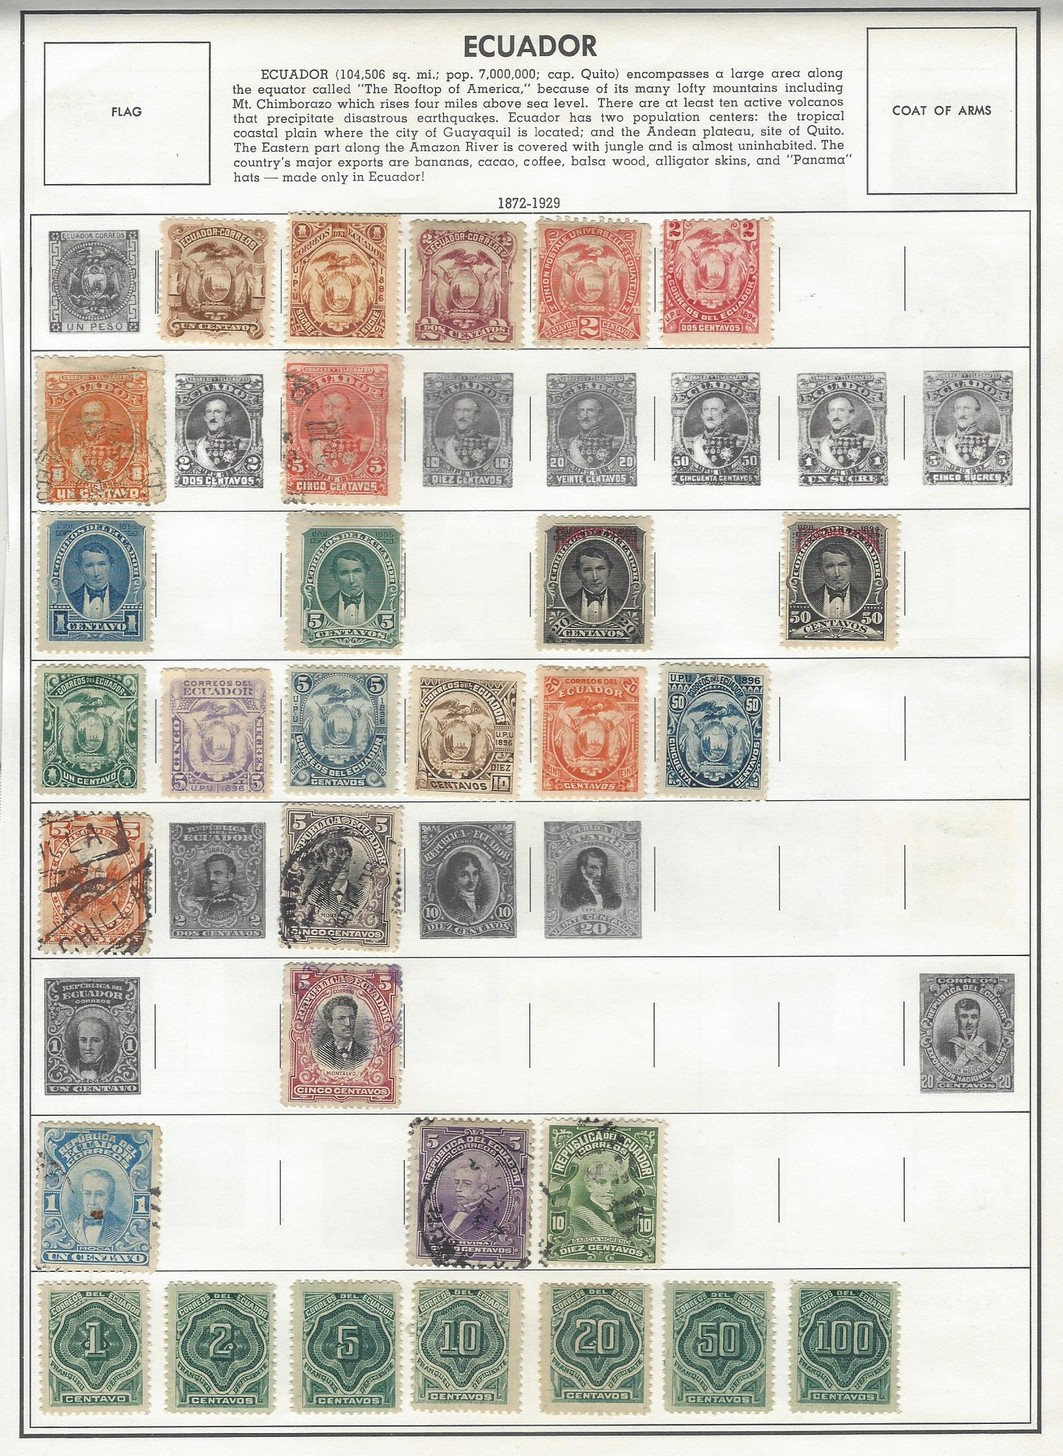 Ecuador 1872 - 1965 mint & used collection (126 stamps)